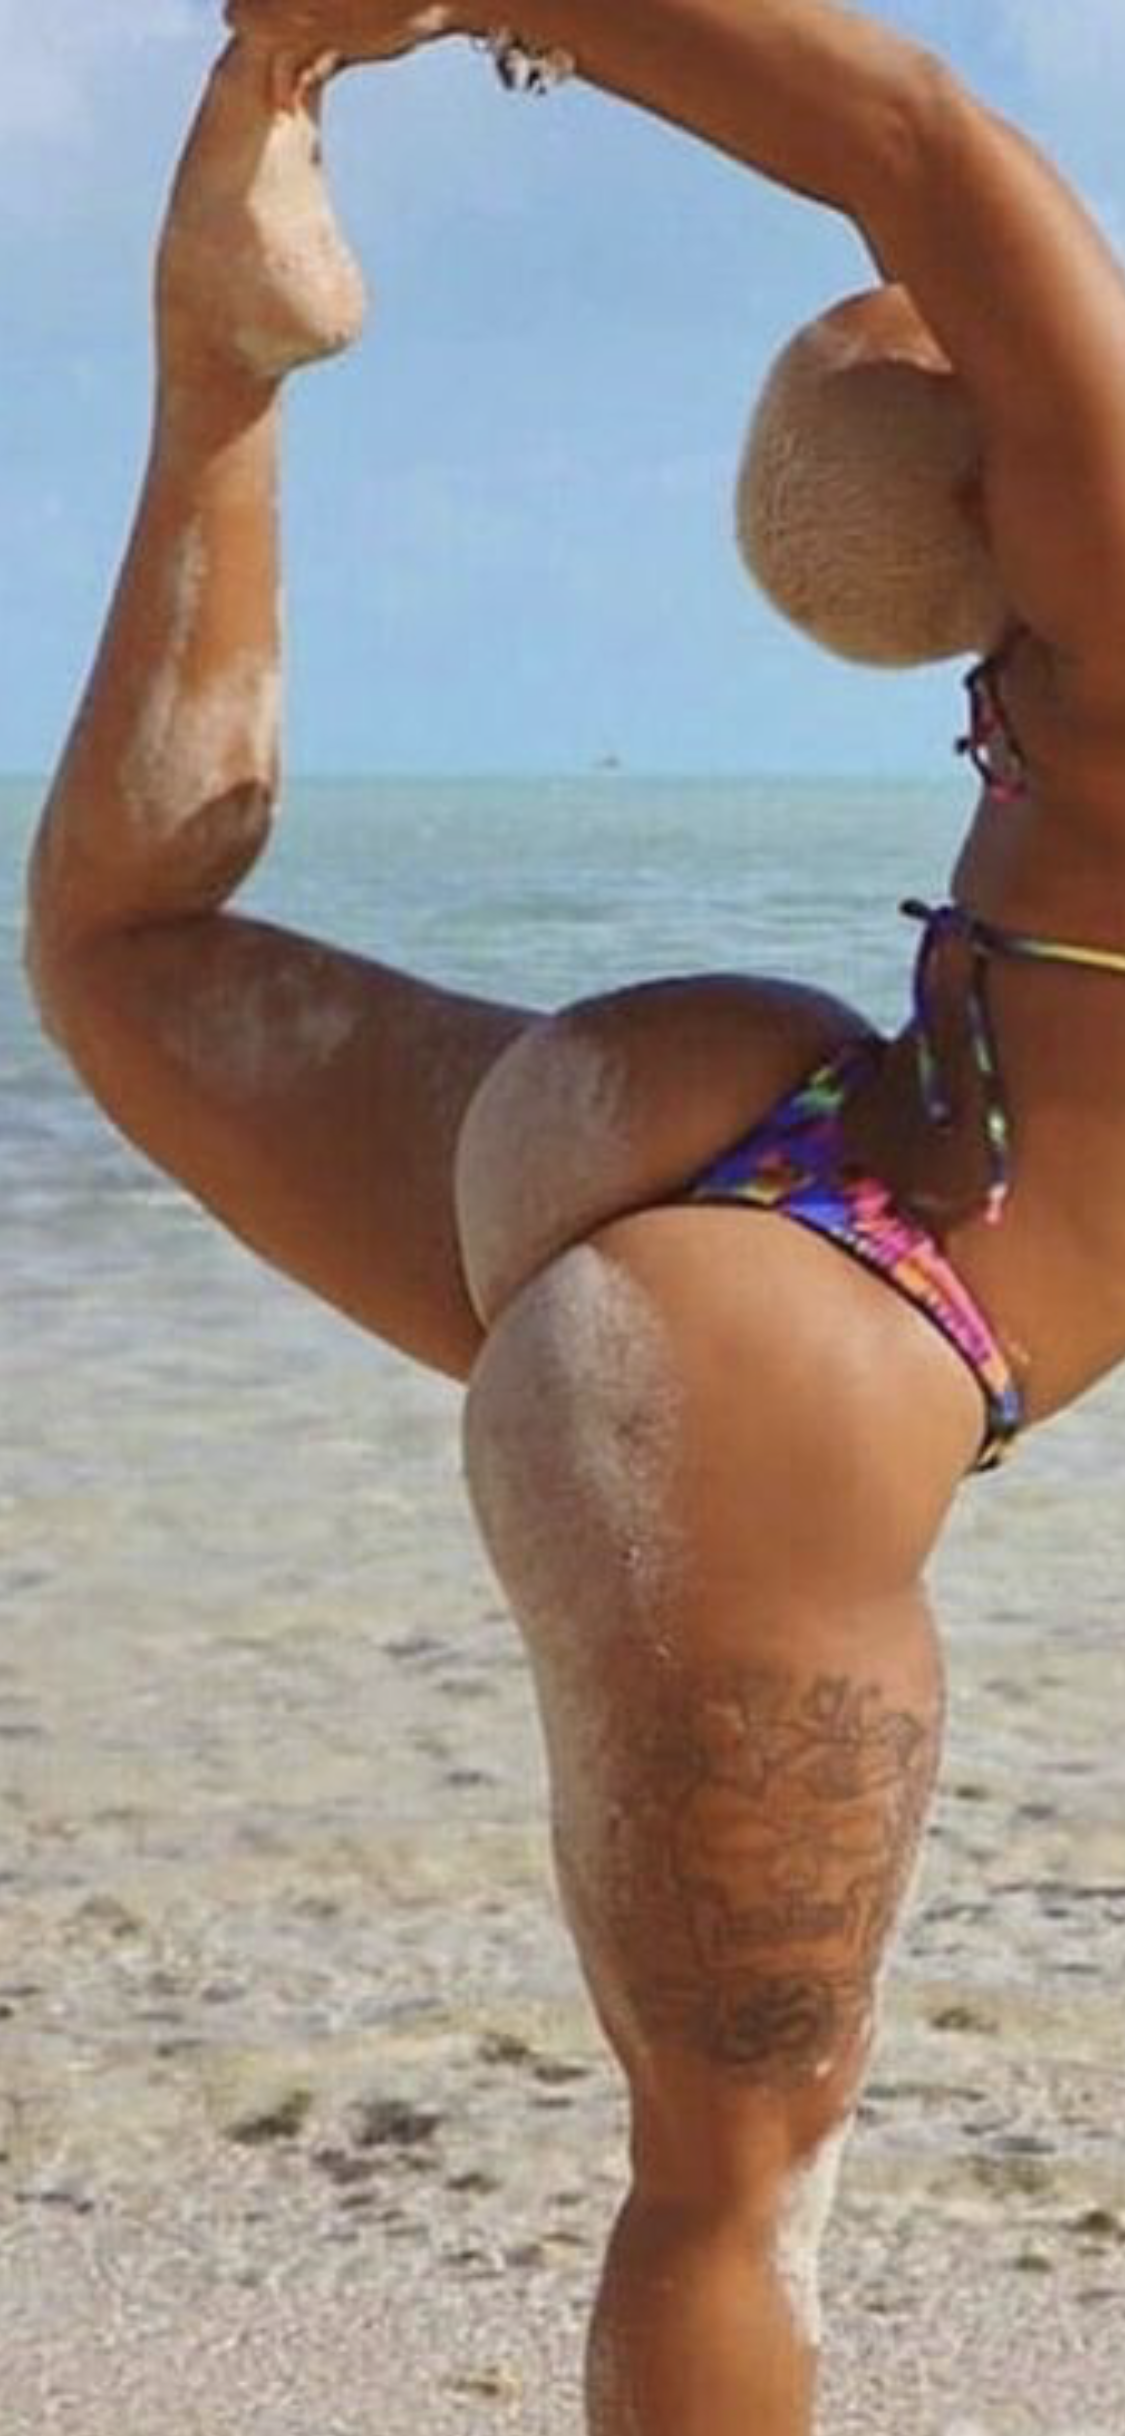 bikini ass sandy cheeks sexy